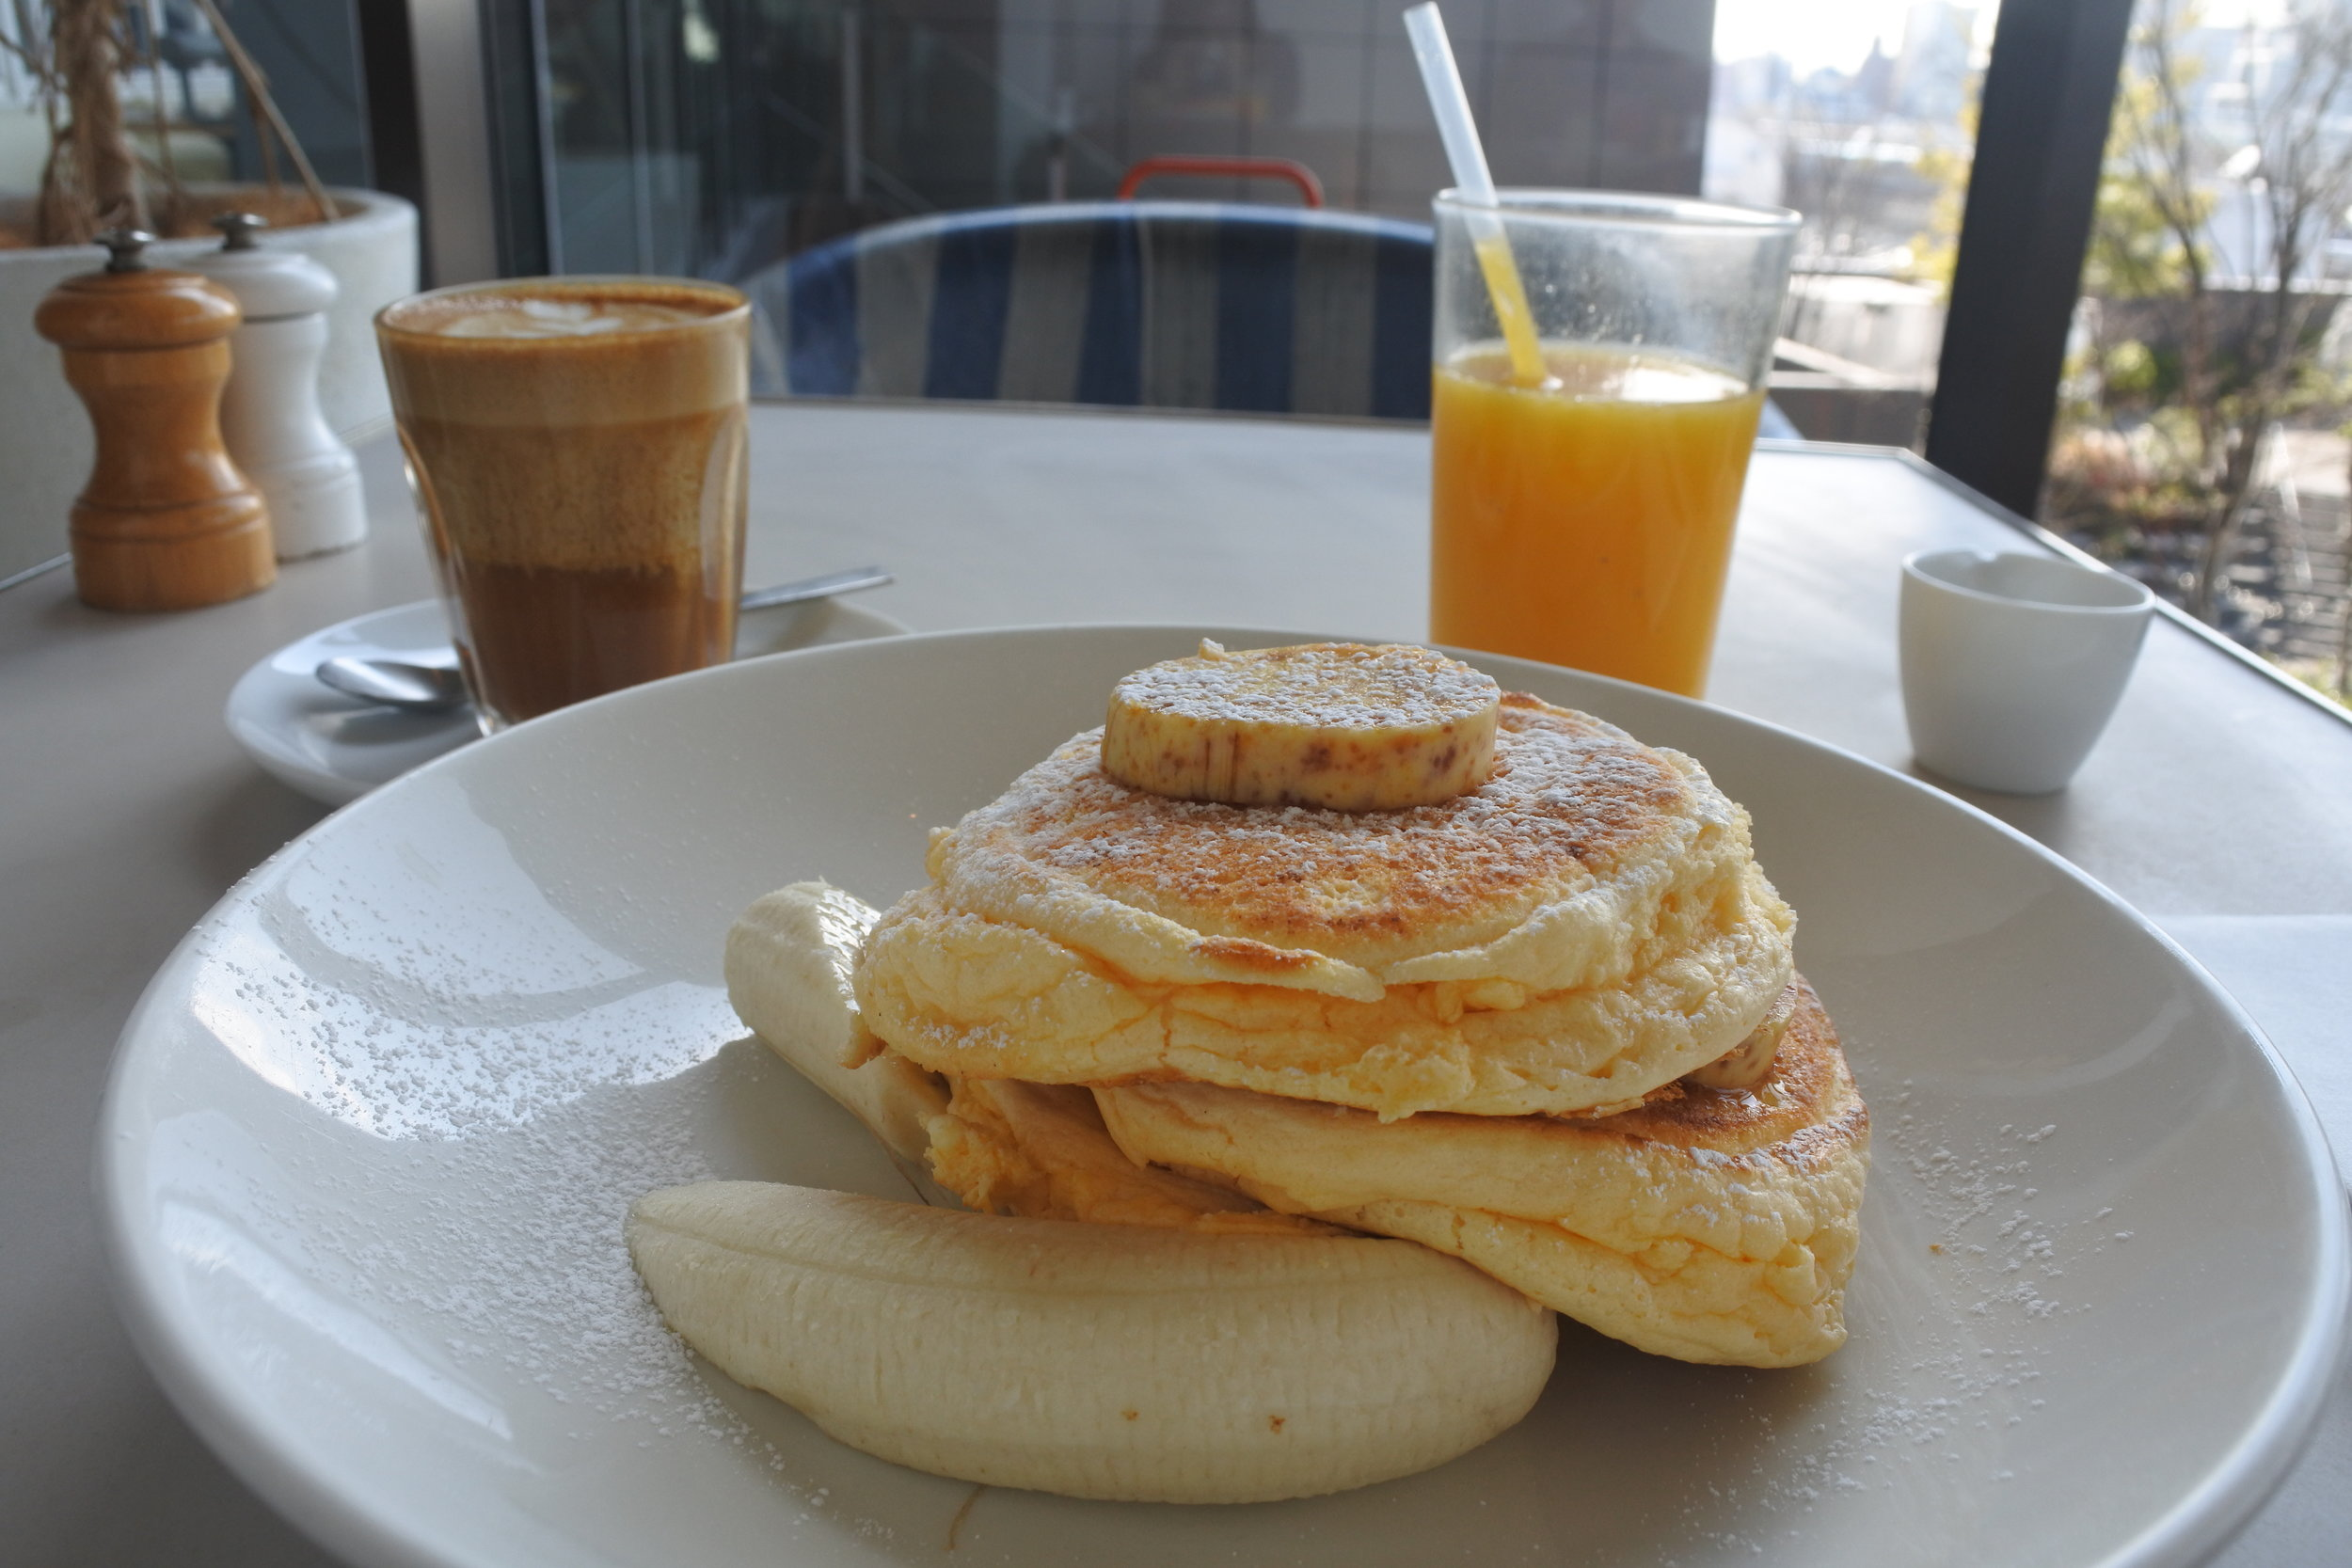 The pancakes were topped with honeycomb butter and fresh bananas.